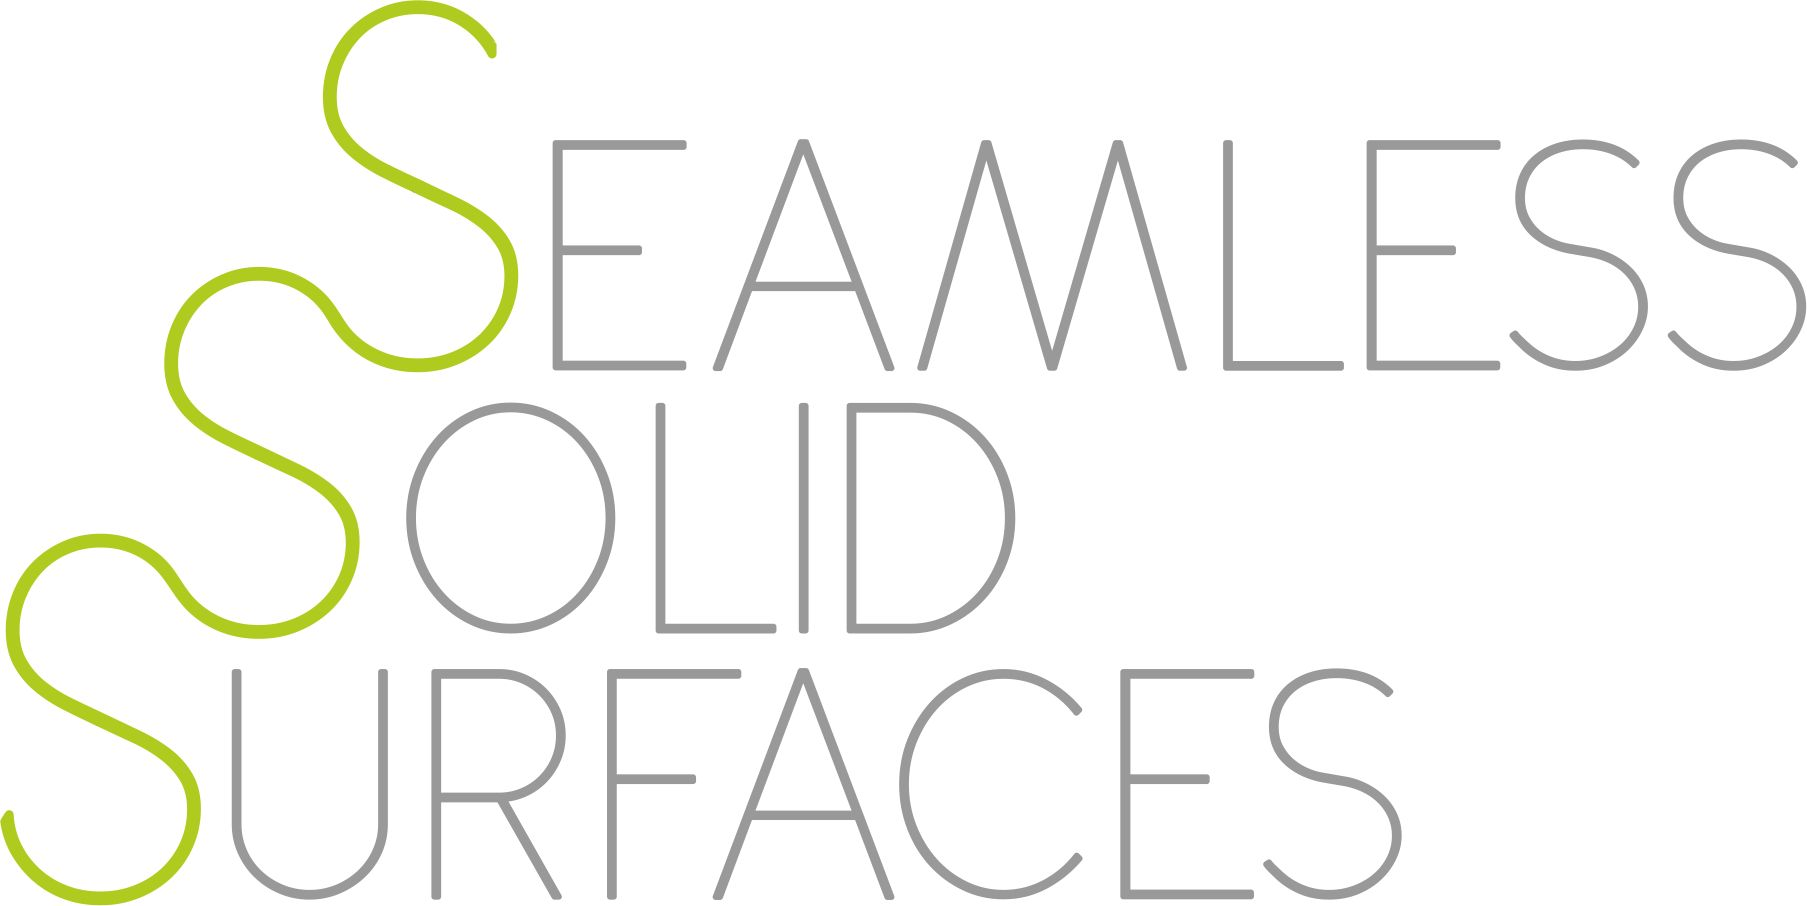 SEAMLESS_SOLID_SURFACES_LOGO.jpg